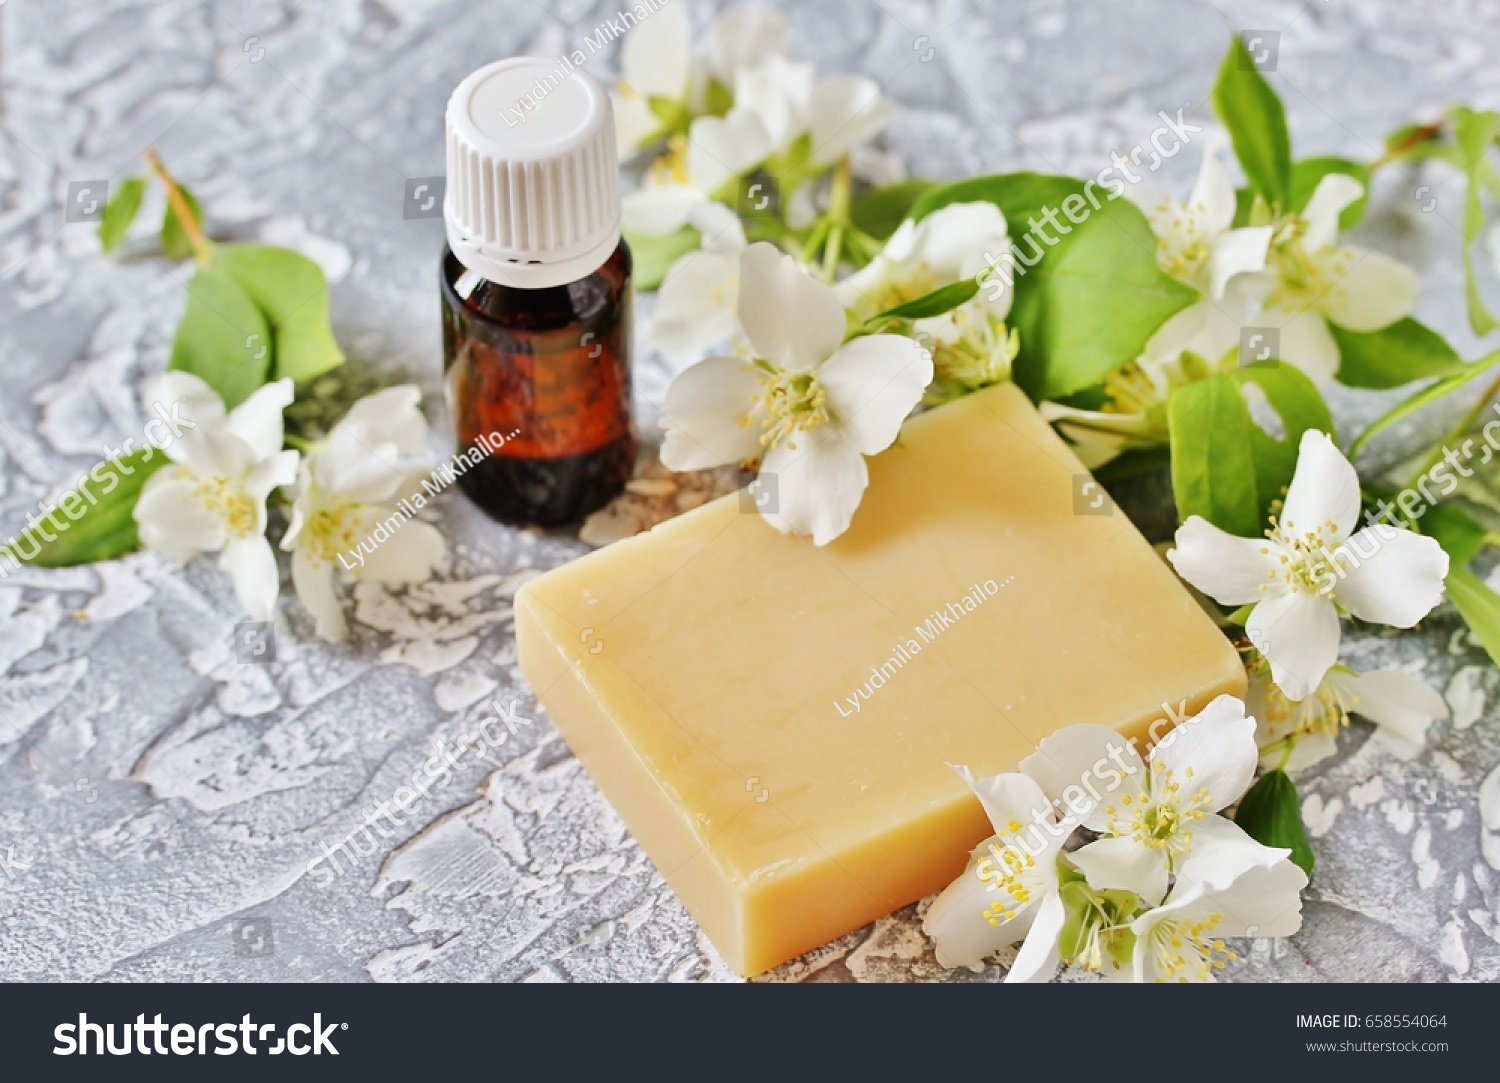 Natural soap jasmine oil ecocosmetics jasmine stock photo royalty natural soap with jasmine oil ecocosmetics with jasmine extract jasmine flowers close up izmirmasajfo